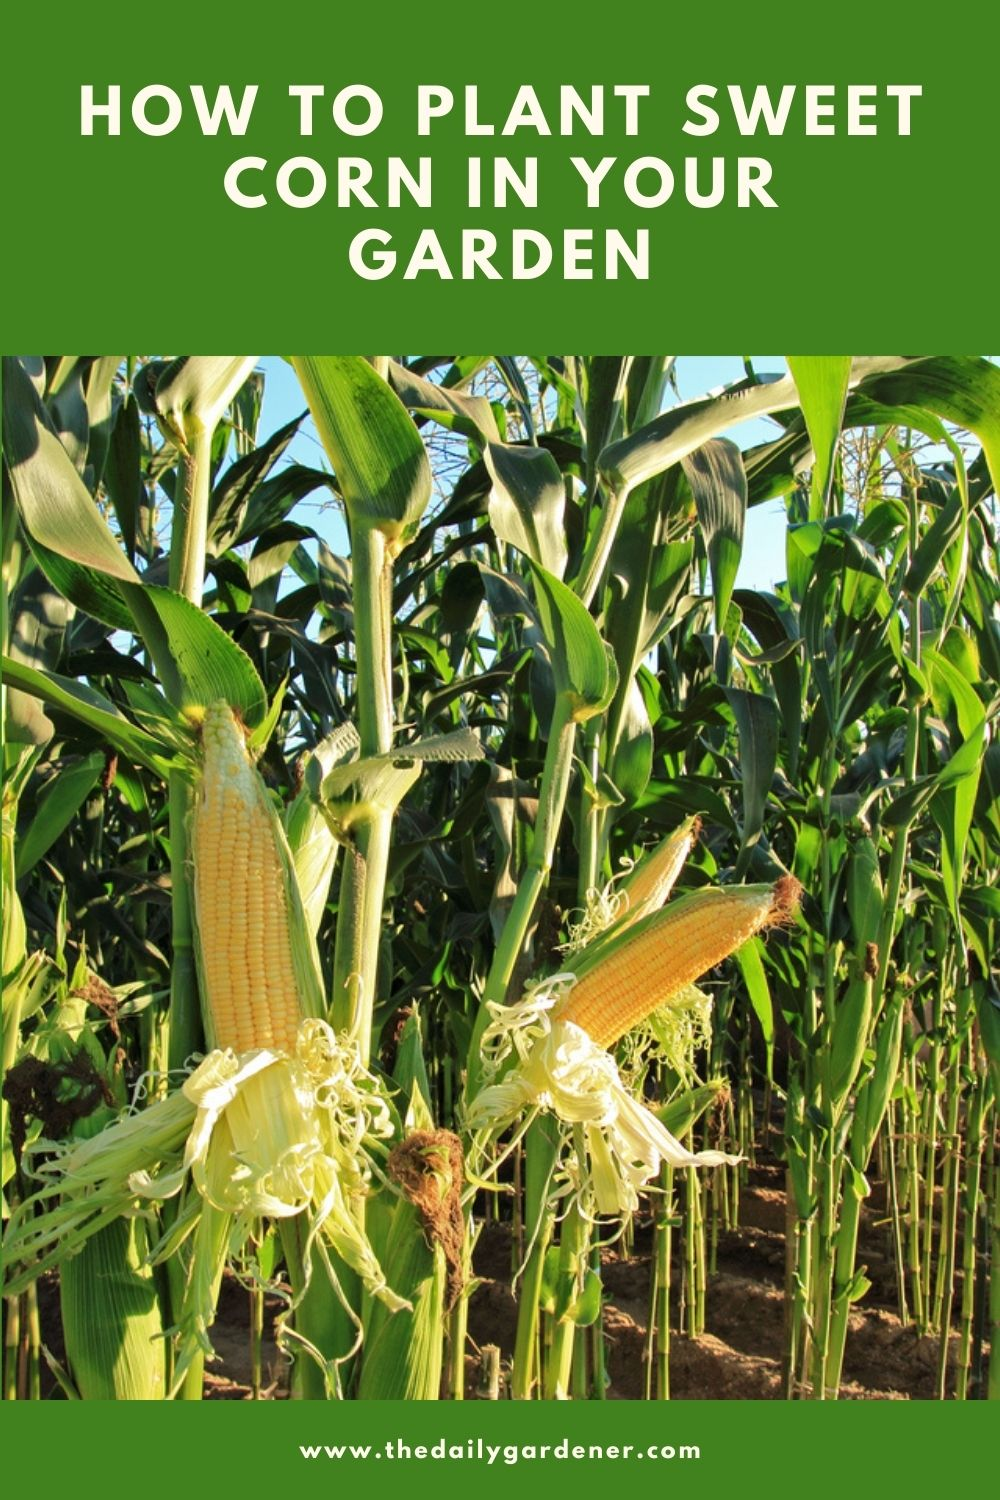 How to Plant Sweet Corn in Your Garden 1